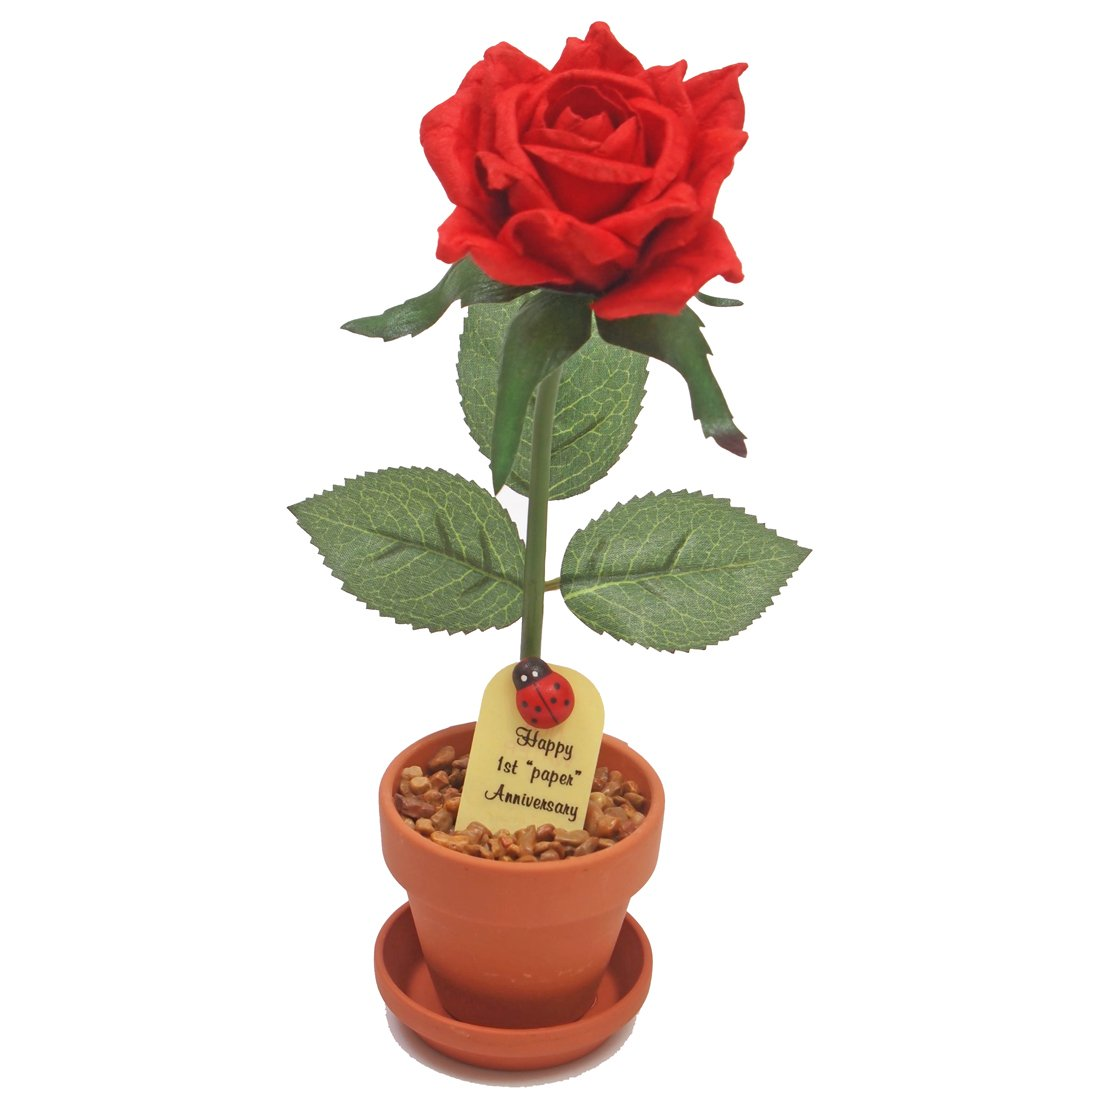 1st Paper Anniversary Gift, Potted Paper Desk Rose, 1st year Wedding Anniversary Gift for Him or Her